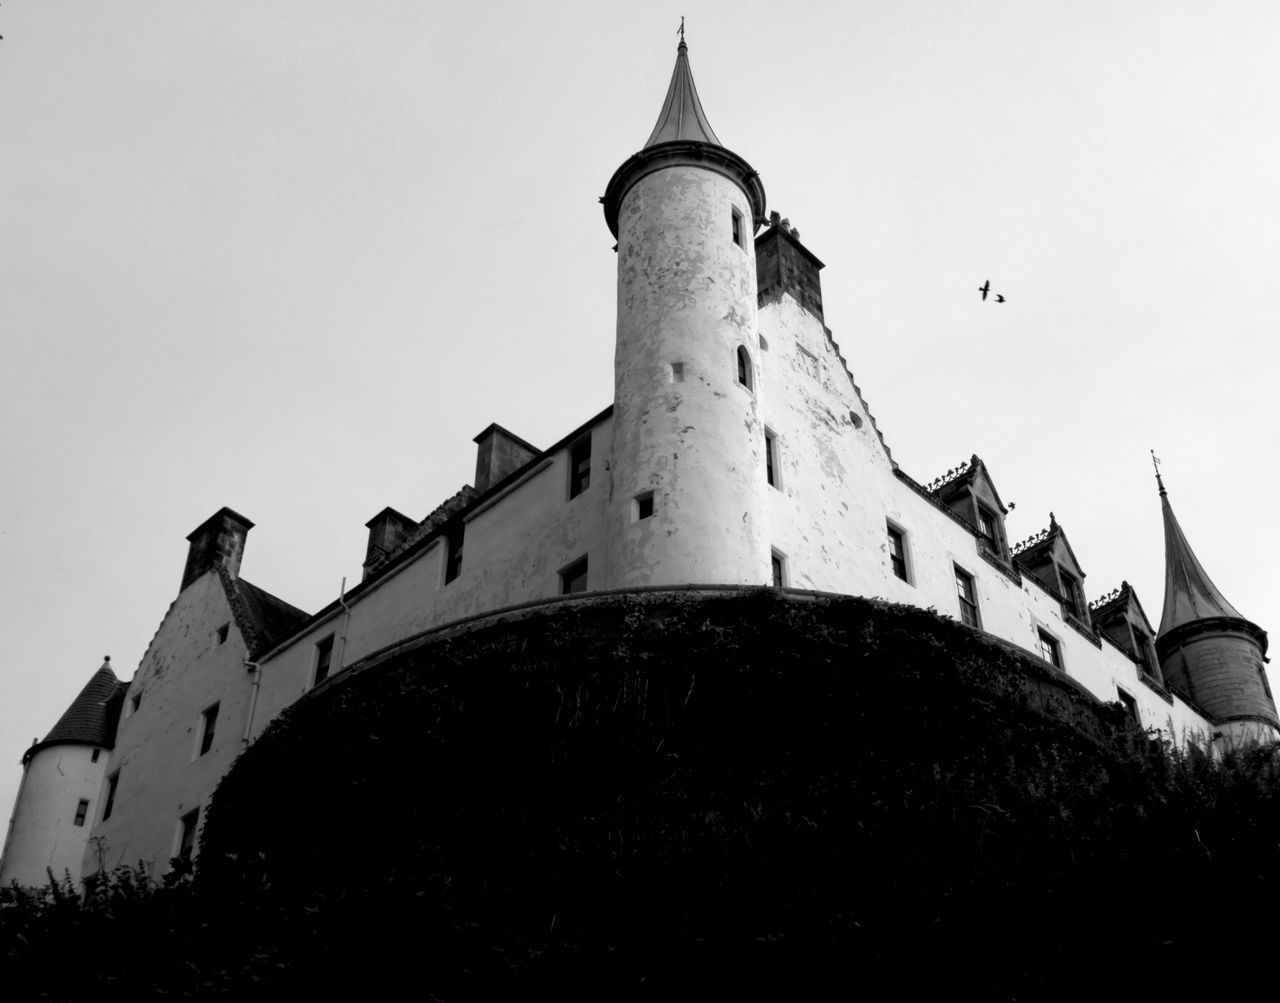 Architecture Built Structure Building Exterior History No People War Day Low Angle View Outdoors Sky Military Castle Historical Buildings Travel Photography Copy Space Non-urban Scene Scotland Black And White Black And White Photography Vacations Travel Destinations Dunrobin Castle Defiance